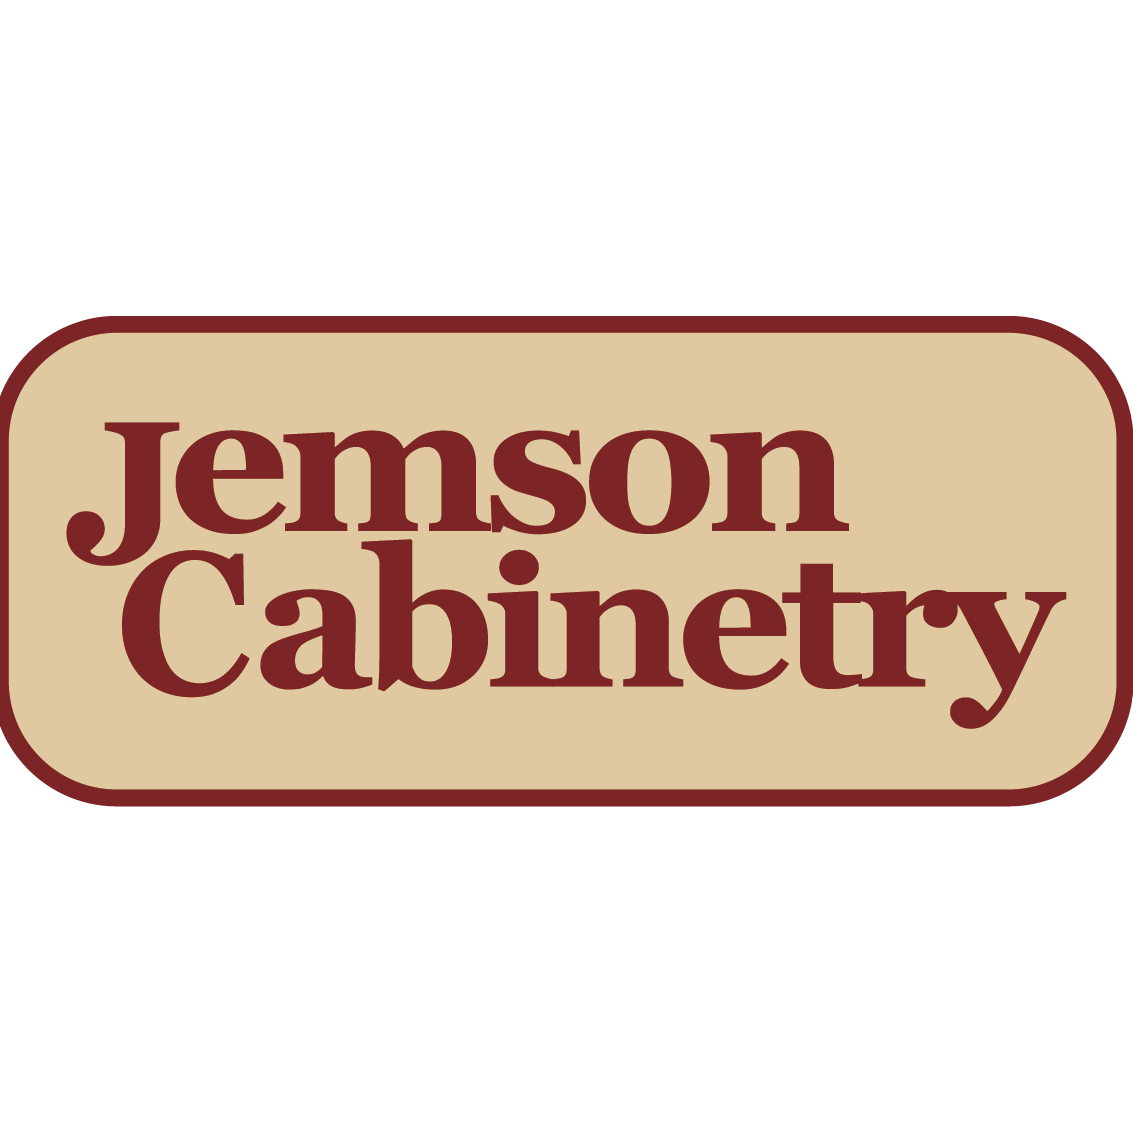 Jemson Cabinetry image 0